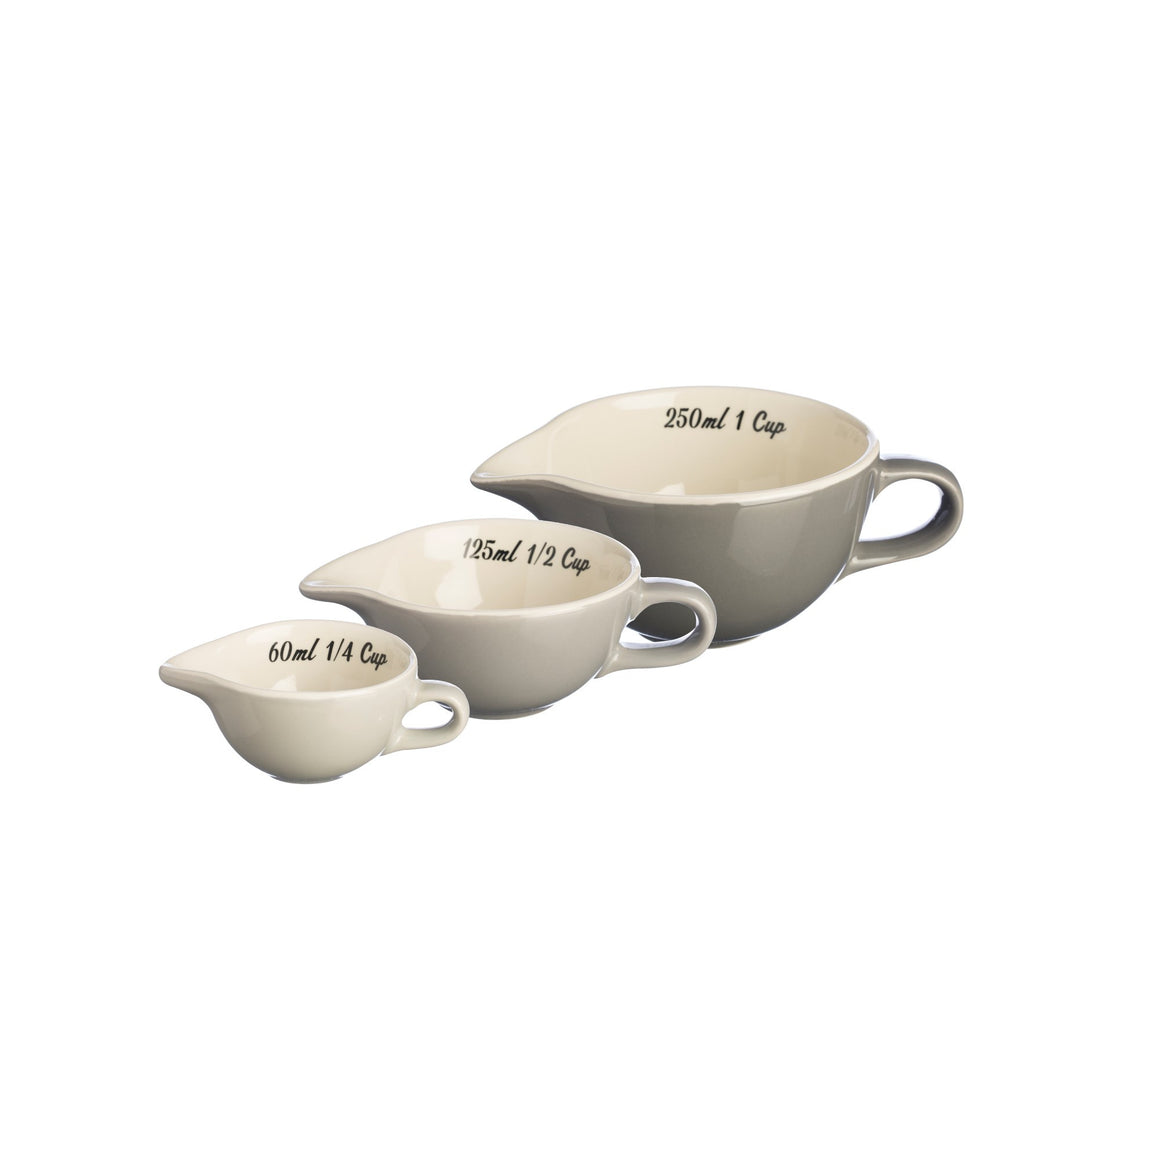 Mason Cash Bake My Day Set of 3 Measuring Cups (Grey)